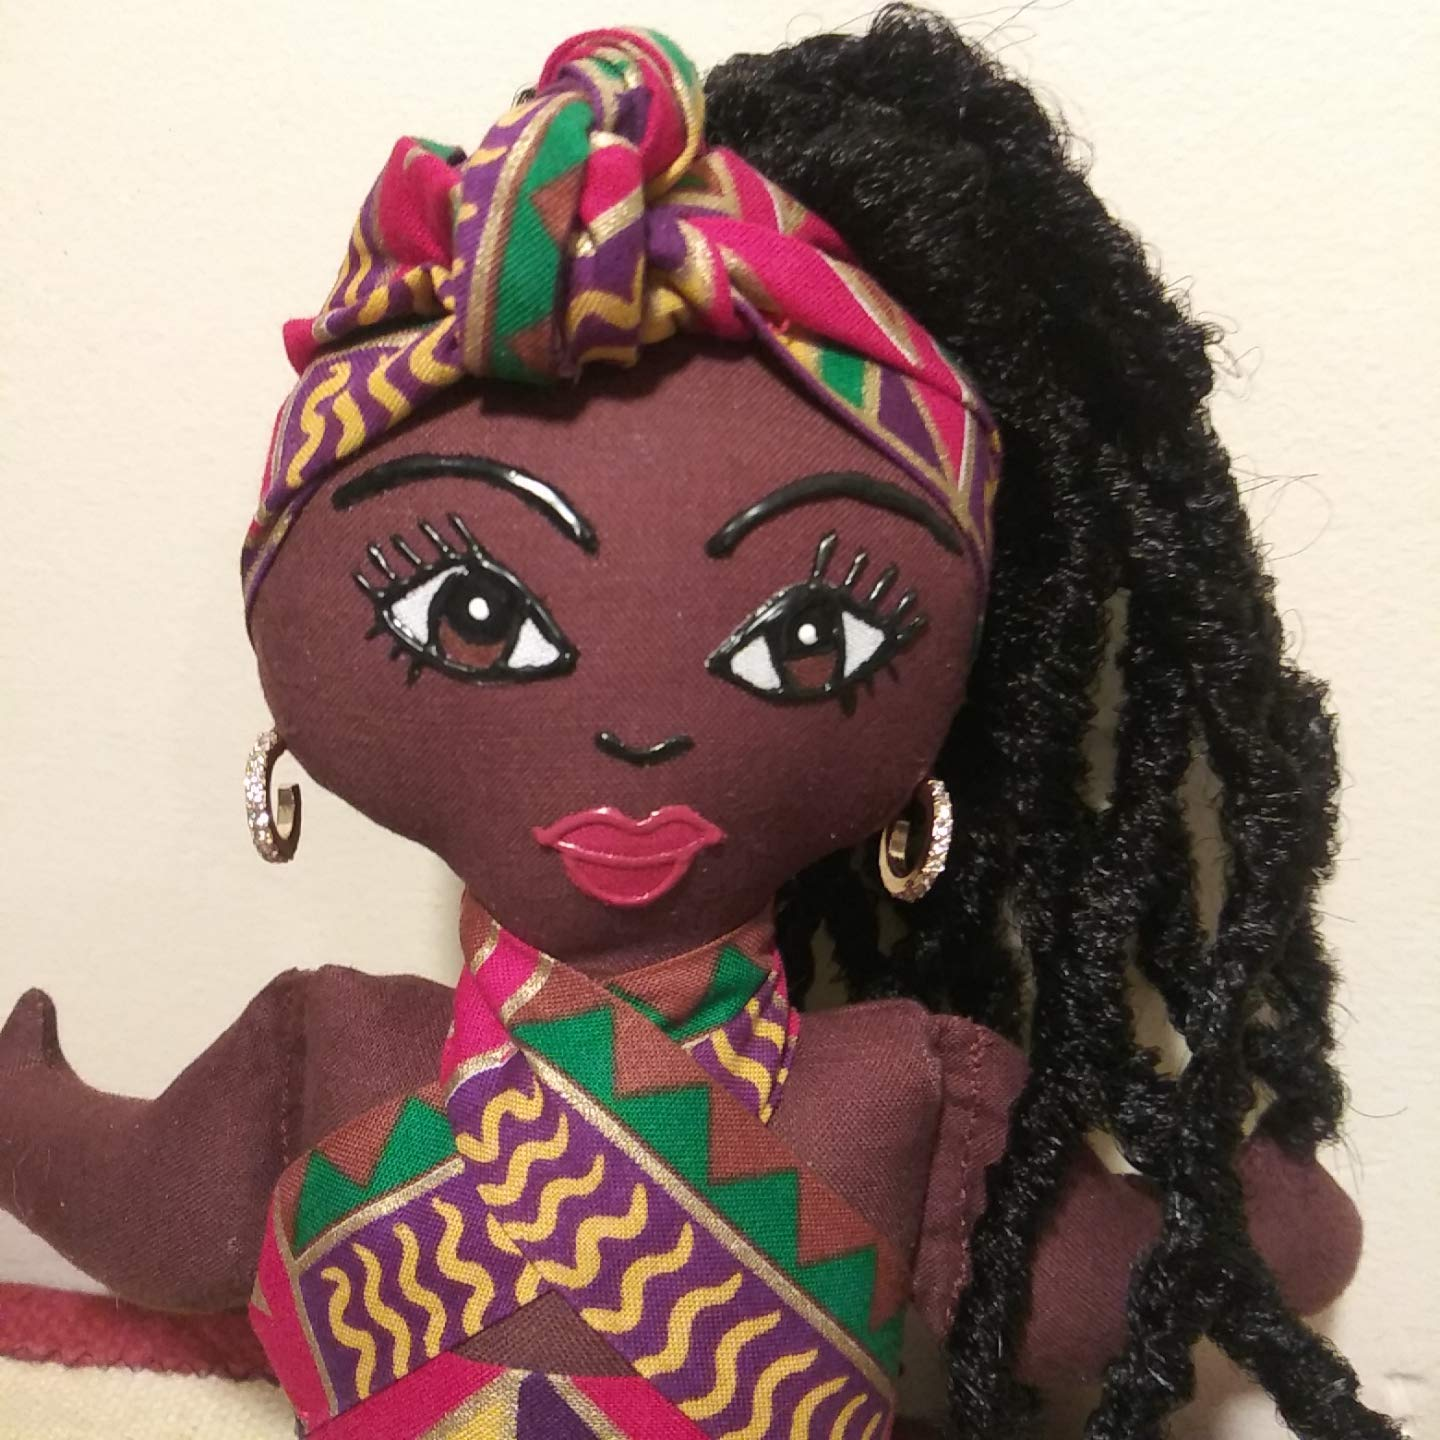 Collectible Doll Multicultural Doll Natural Hair Styles 14 inch Doll Black Doll Hand Painted African American Doll Black Doll Maker Ethnic Doll African Inspired Handcrafted